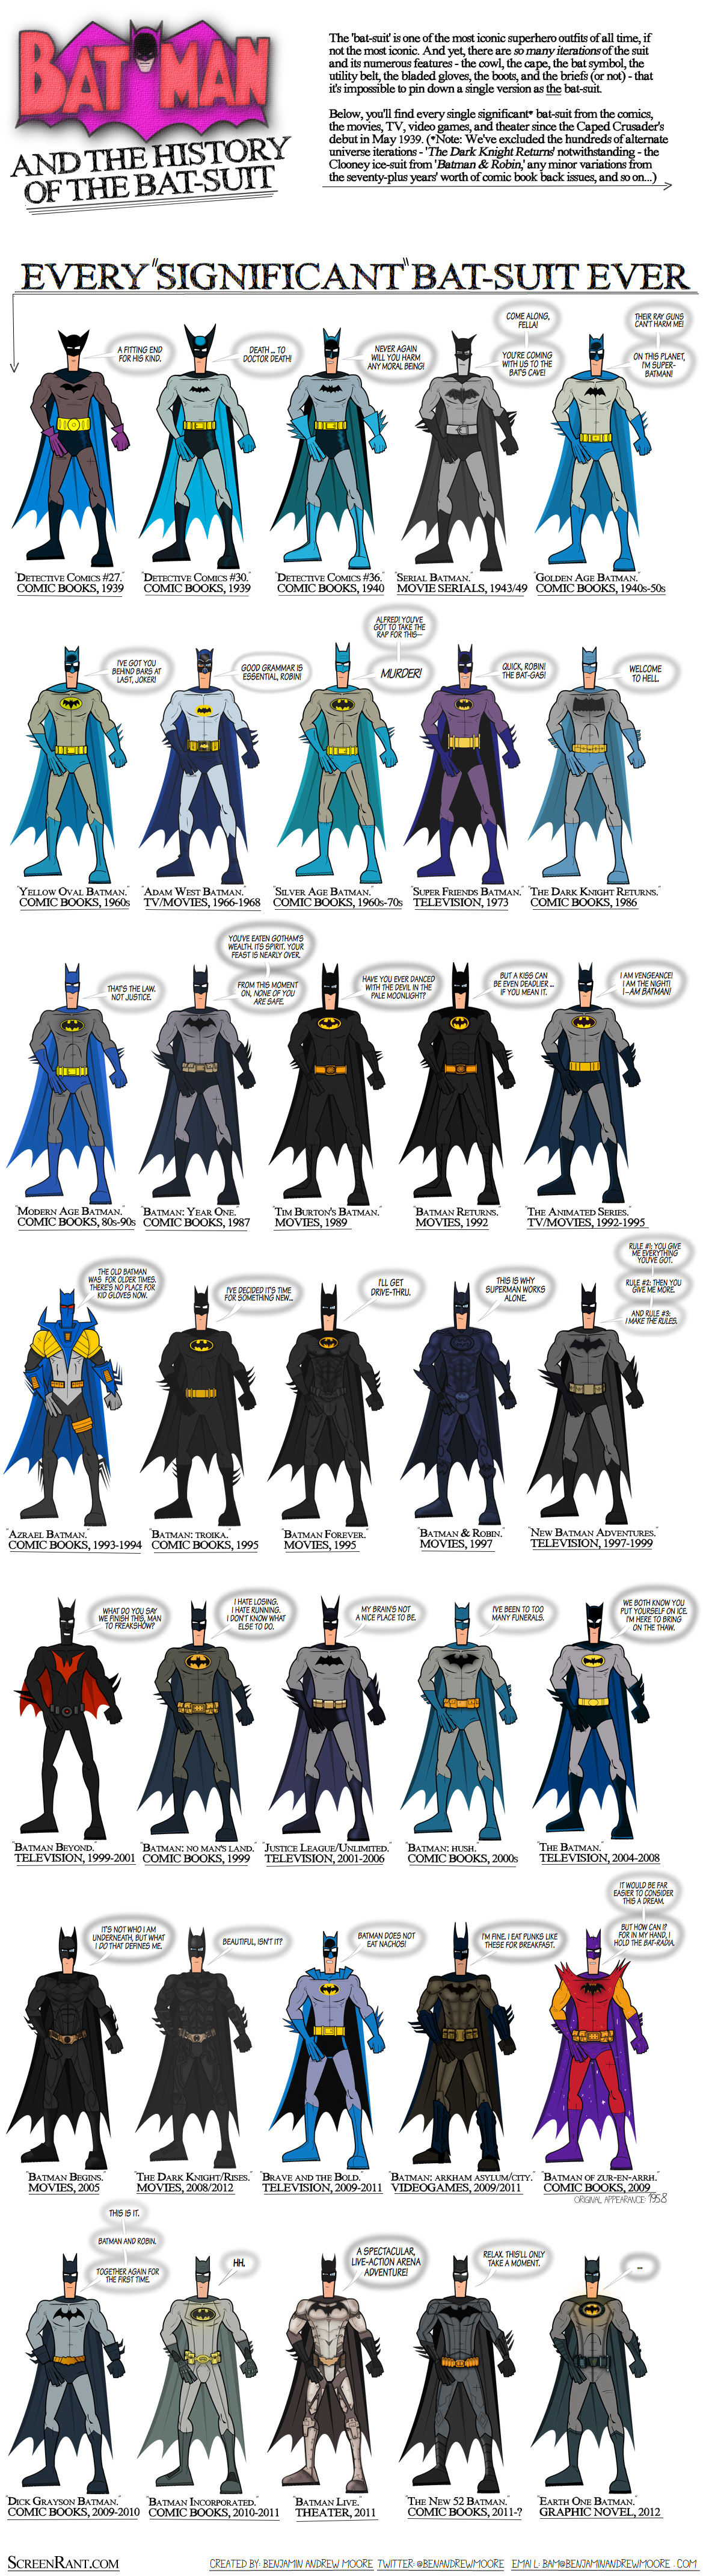 More on the Batsuit